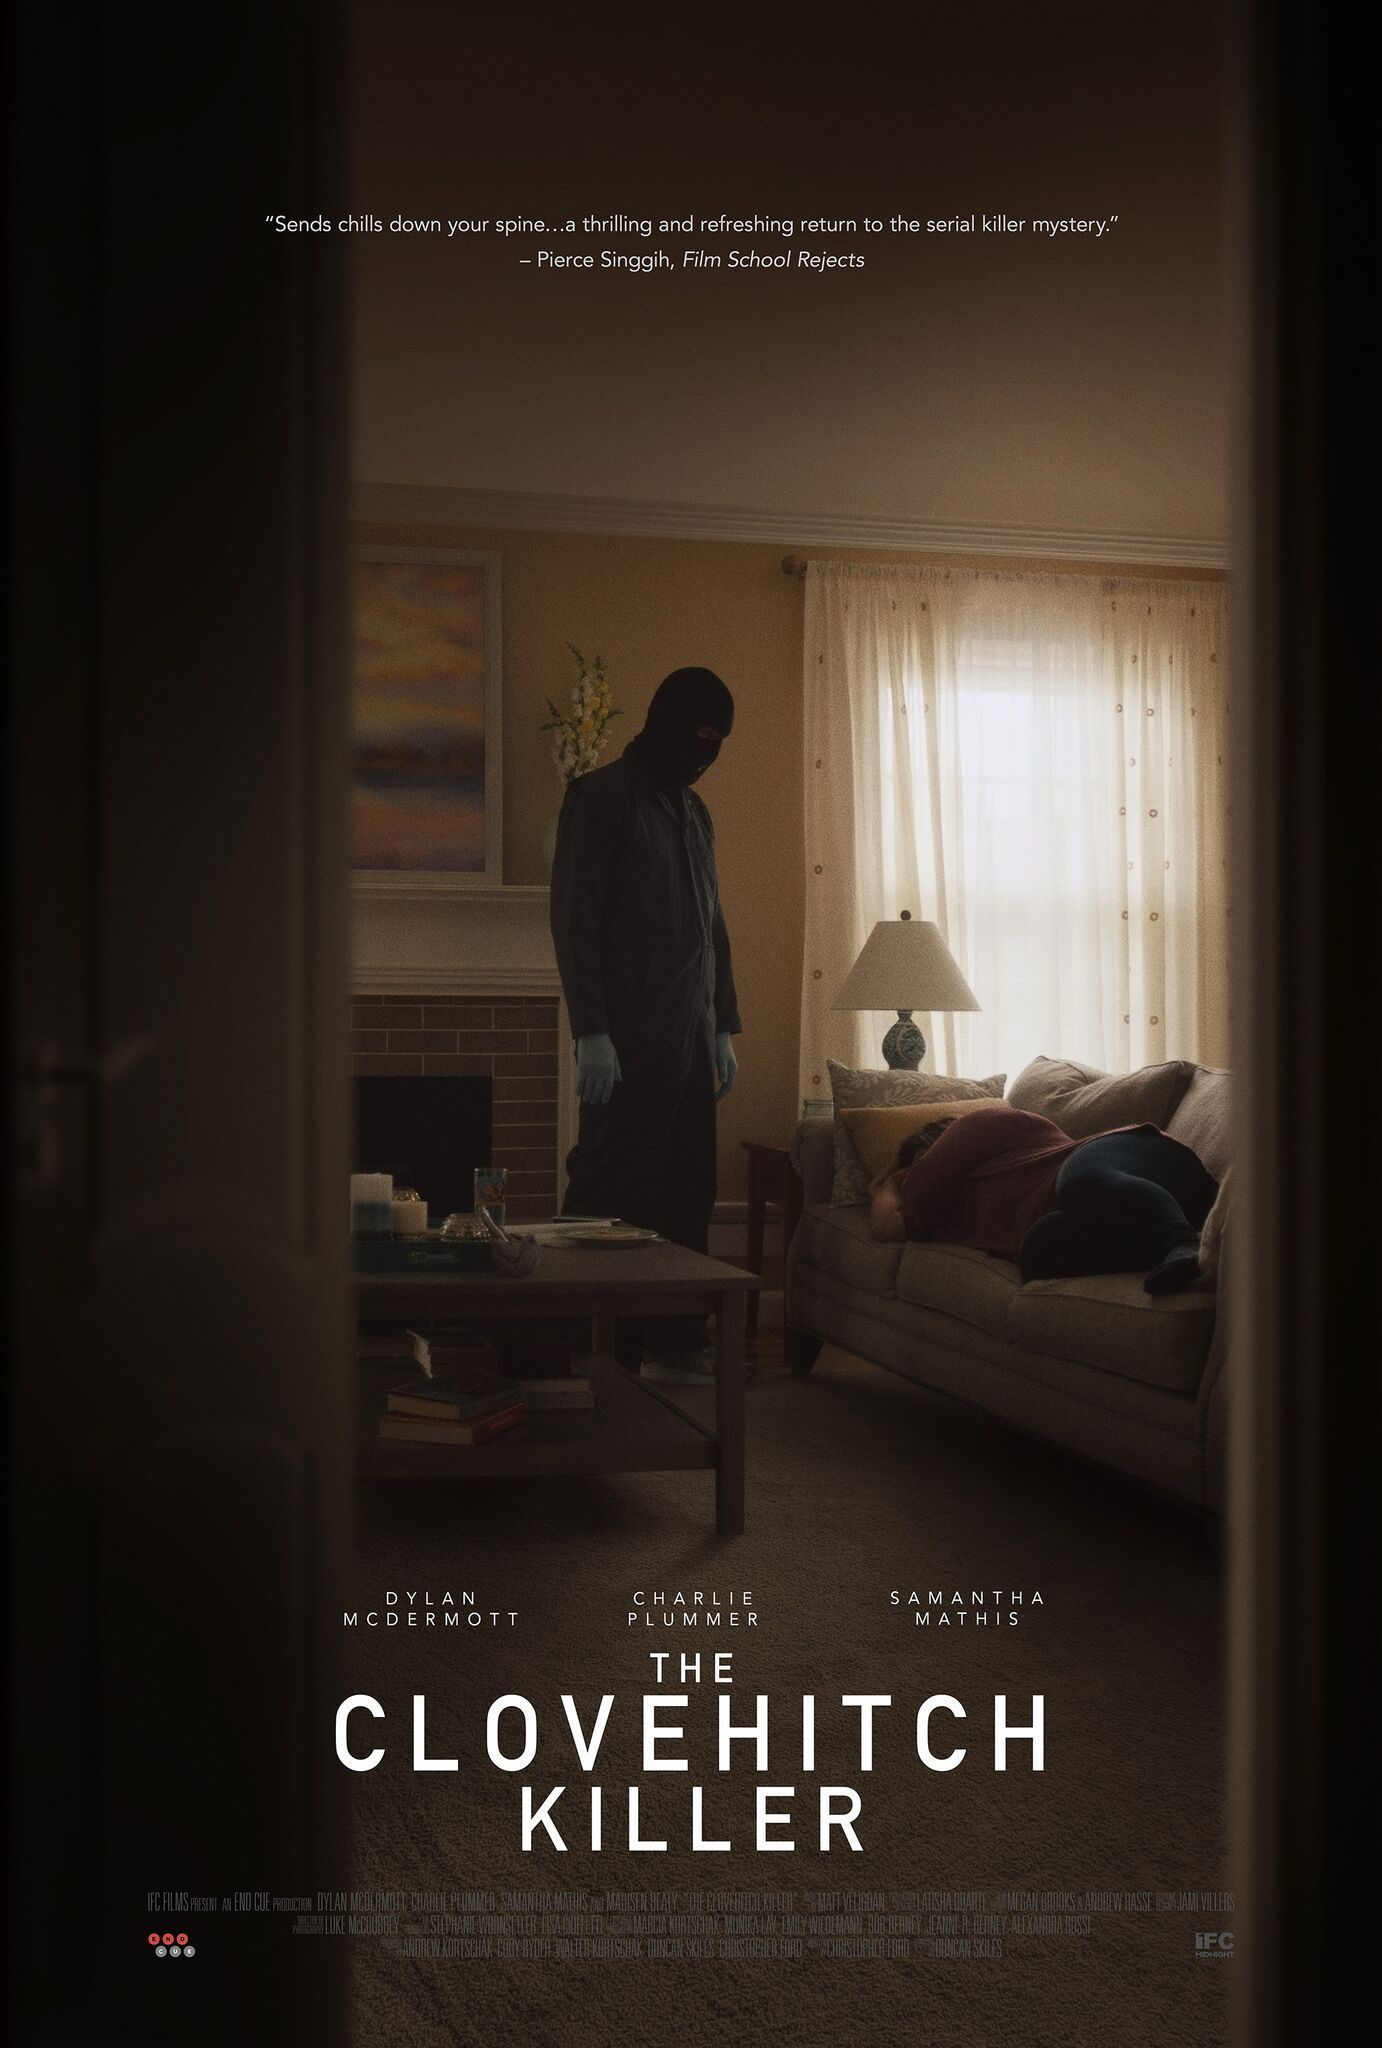 The Clovehitch Killer Review: A Slow-Burn Serial Killer Chiller